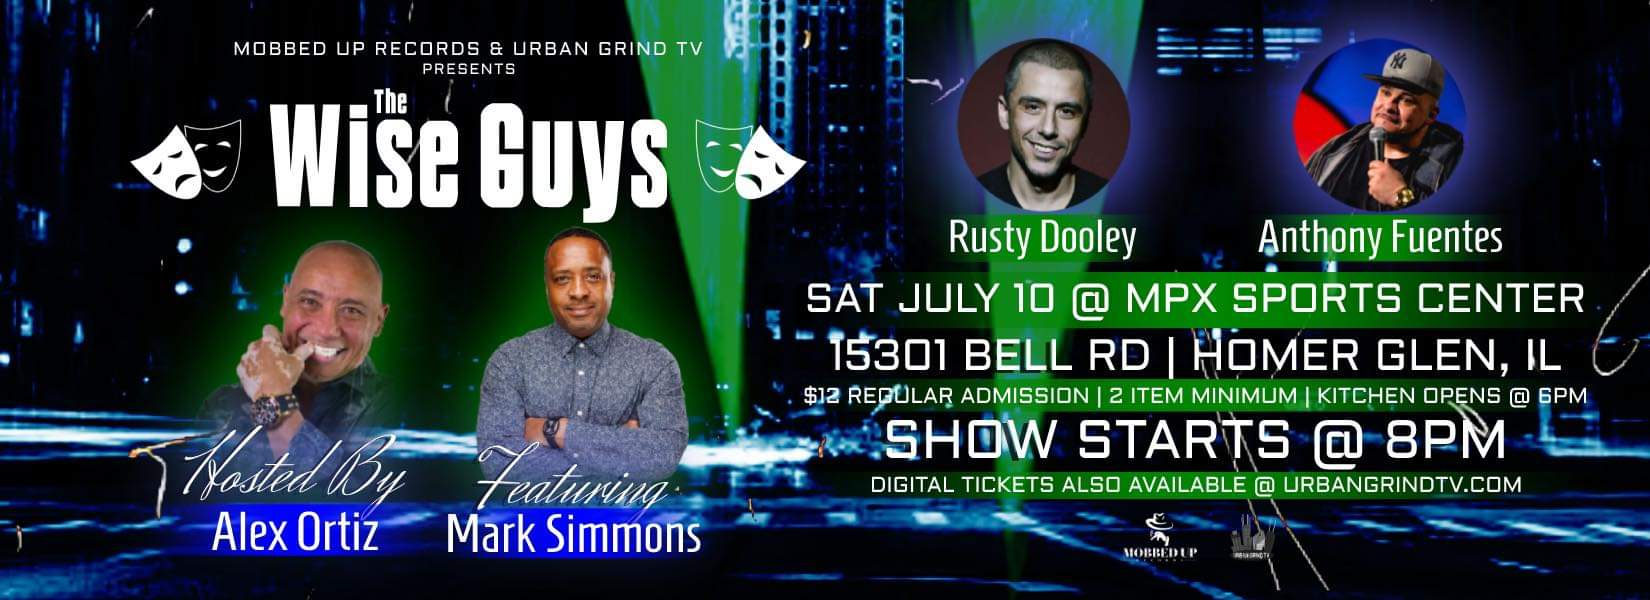 The Wise Guys Comedy